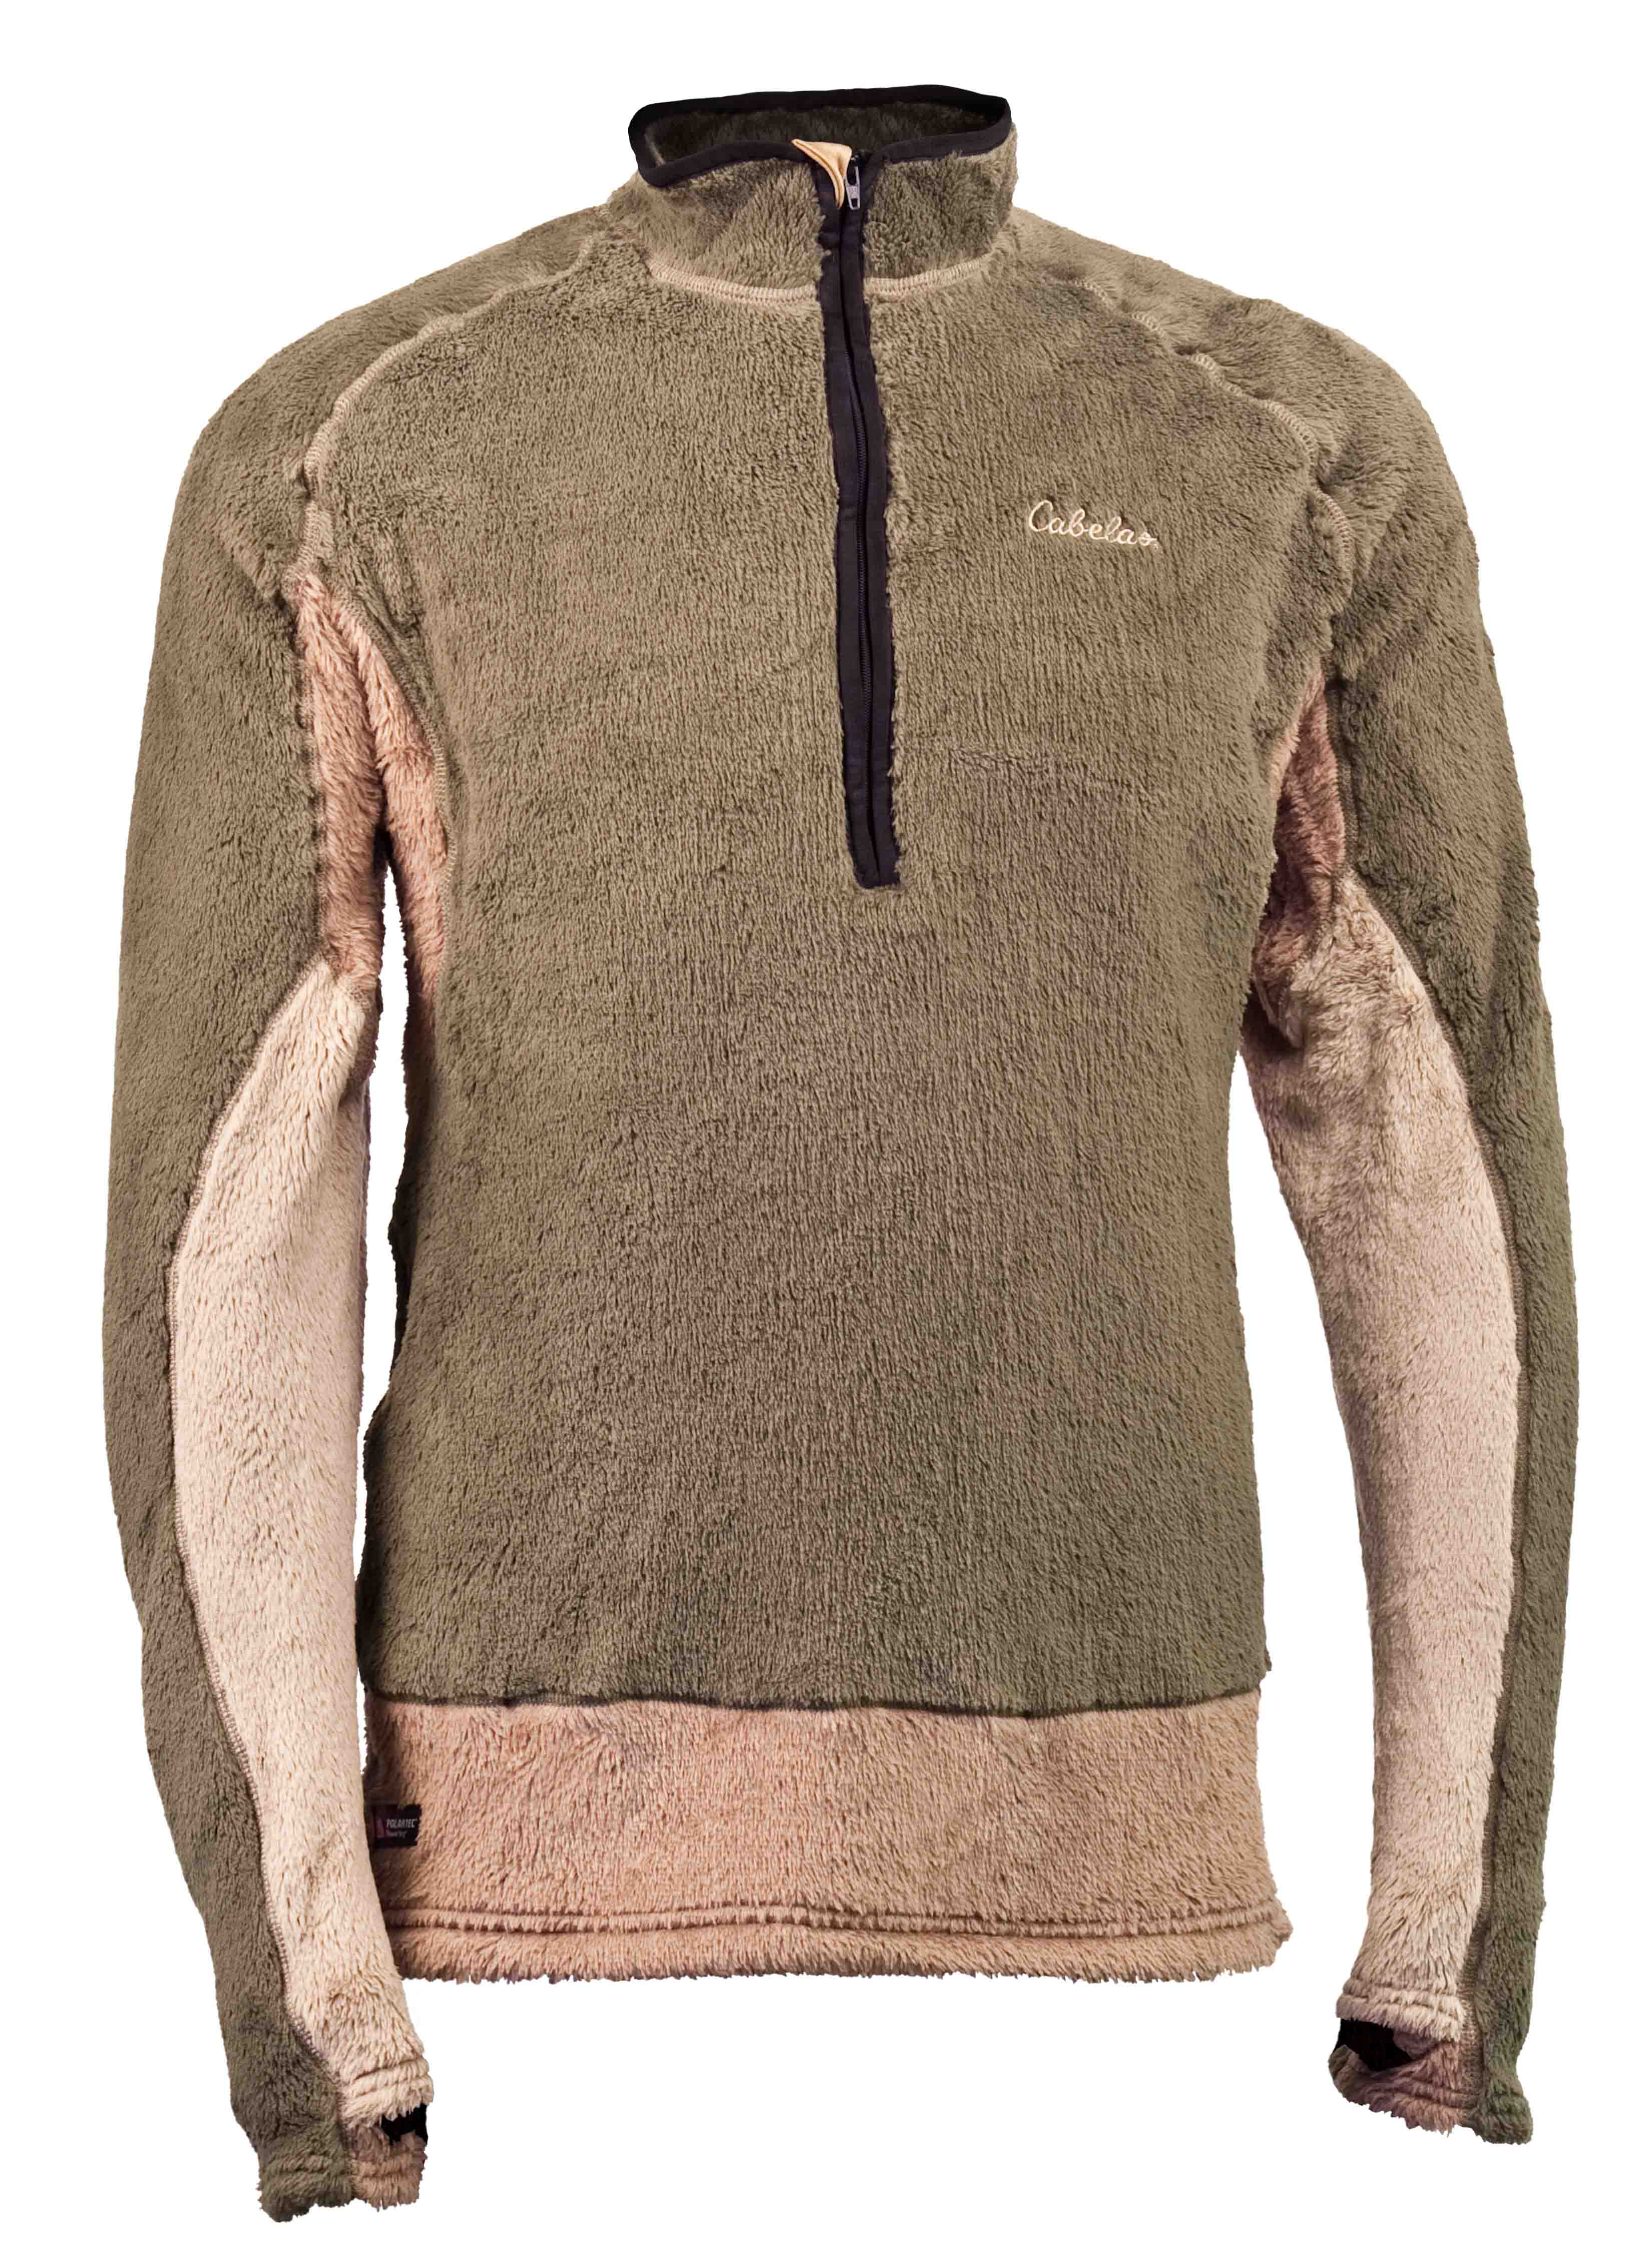 Cabela's Thermal Zone Stand Hunter Baselayer - Cabela's studied body thermography and employed three different weights of Polartecr Thermal Pror High Loft to create its warmest baselayer ever - providing the ultimate in heat retention and comfort for treestand hunters. The highly breathable, compressible, and quick-drying Polartecr Thermal Pror High Loft fleece fabrics, all treated with Polartecr Odor Resistant Technology (with Polygiener) to neutralize odor-causing bacteria, are the most technically advanced of the Polartecr insulation fabrics, providing warmth without weight and achieving the utmost versatility and performance under extreme conditions.